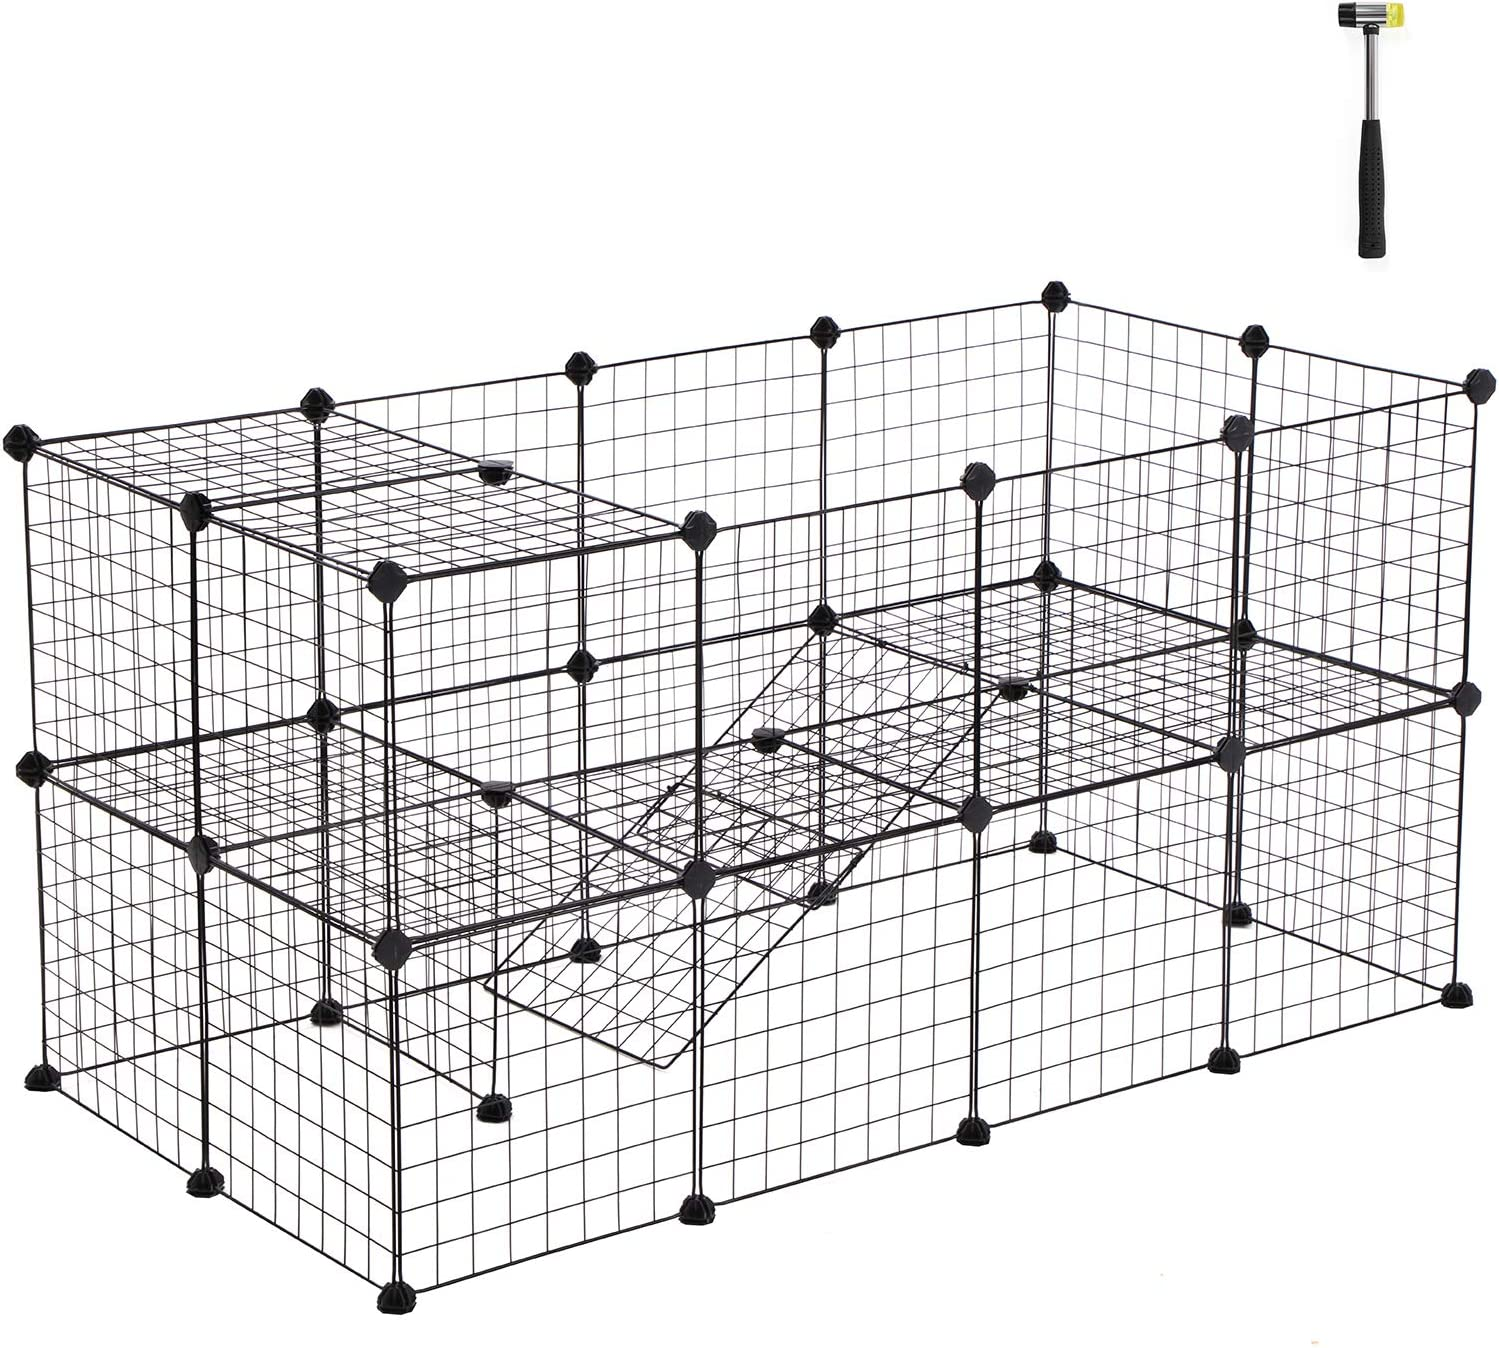 SONGMICS Pet Playpen Includes Cable Ties, Metal Wire Apartment-Style Two-Storey Bunny Fence and Kennel, Comfortable Pet Premium Villa for Guinea Pigs, Bunnies, Rabbits,Puppies,Indoor Upgrade ULPI02H